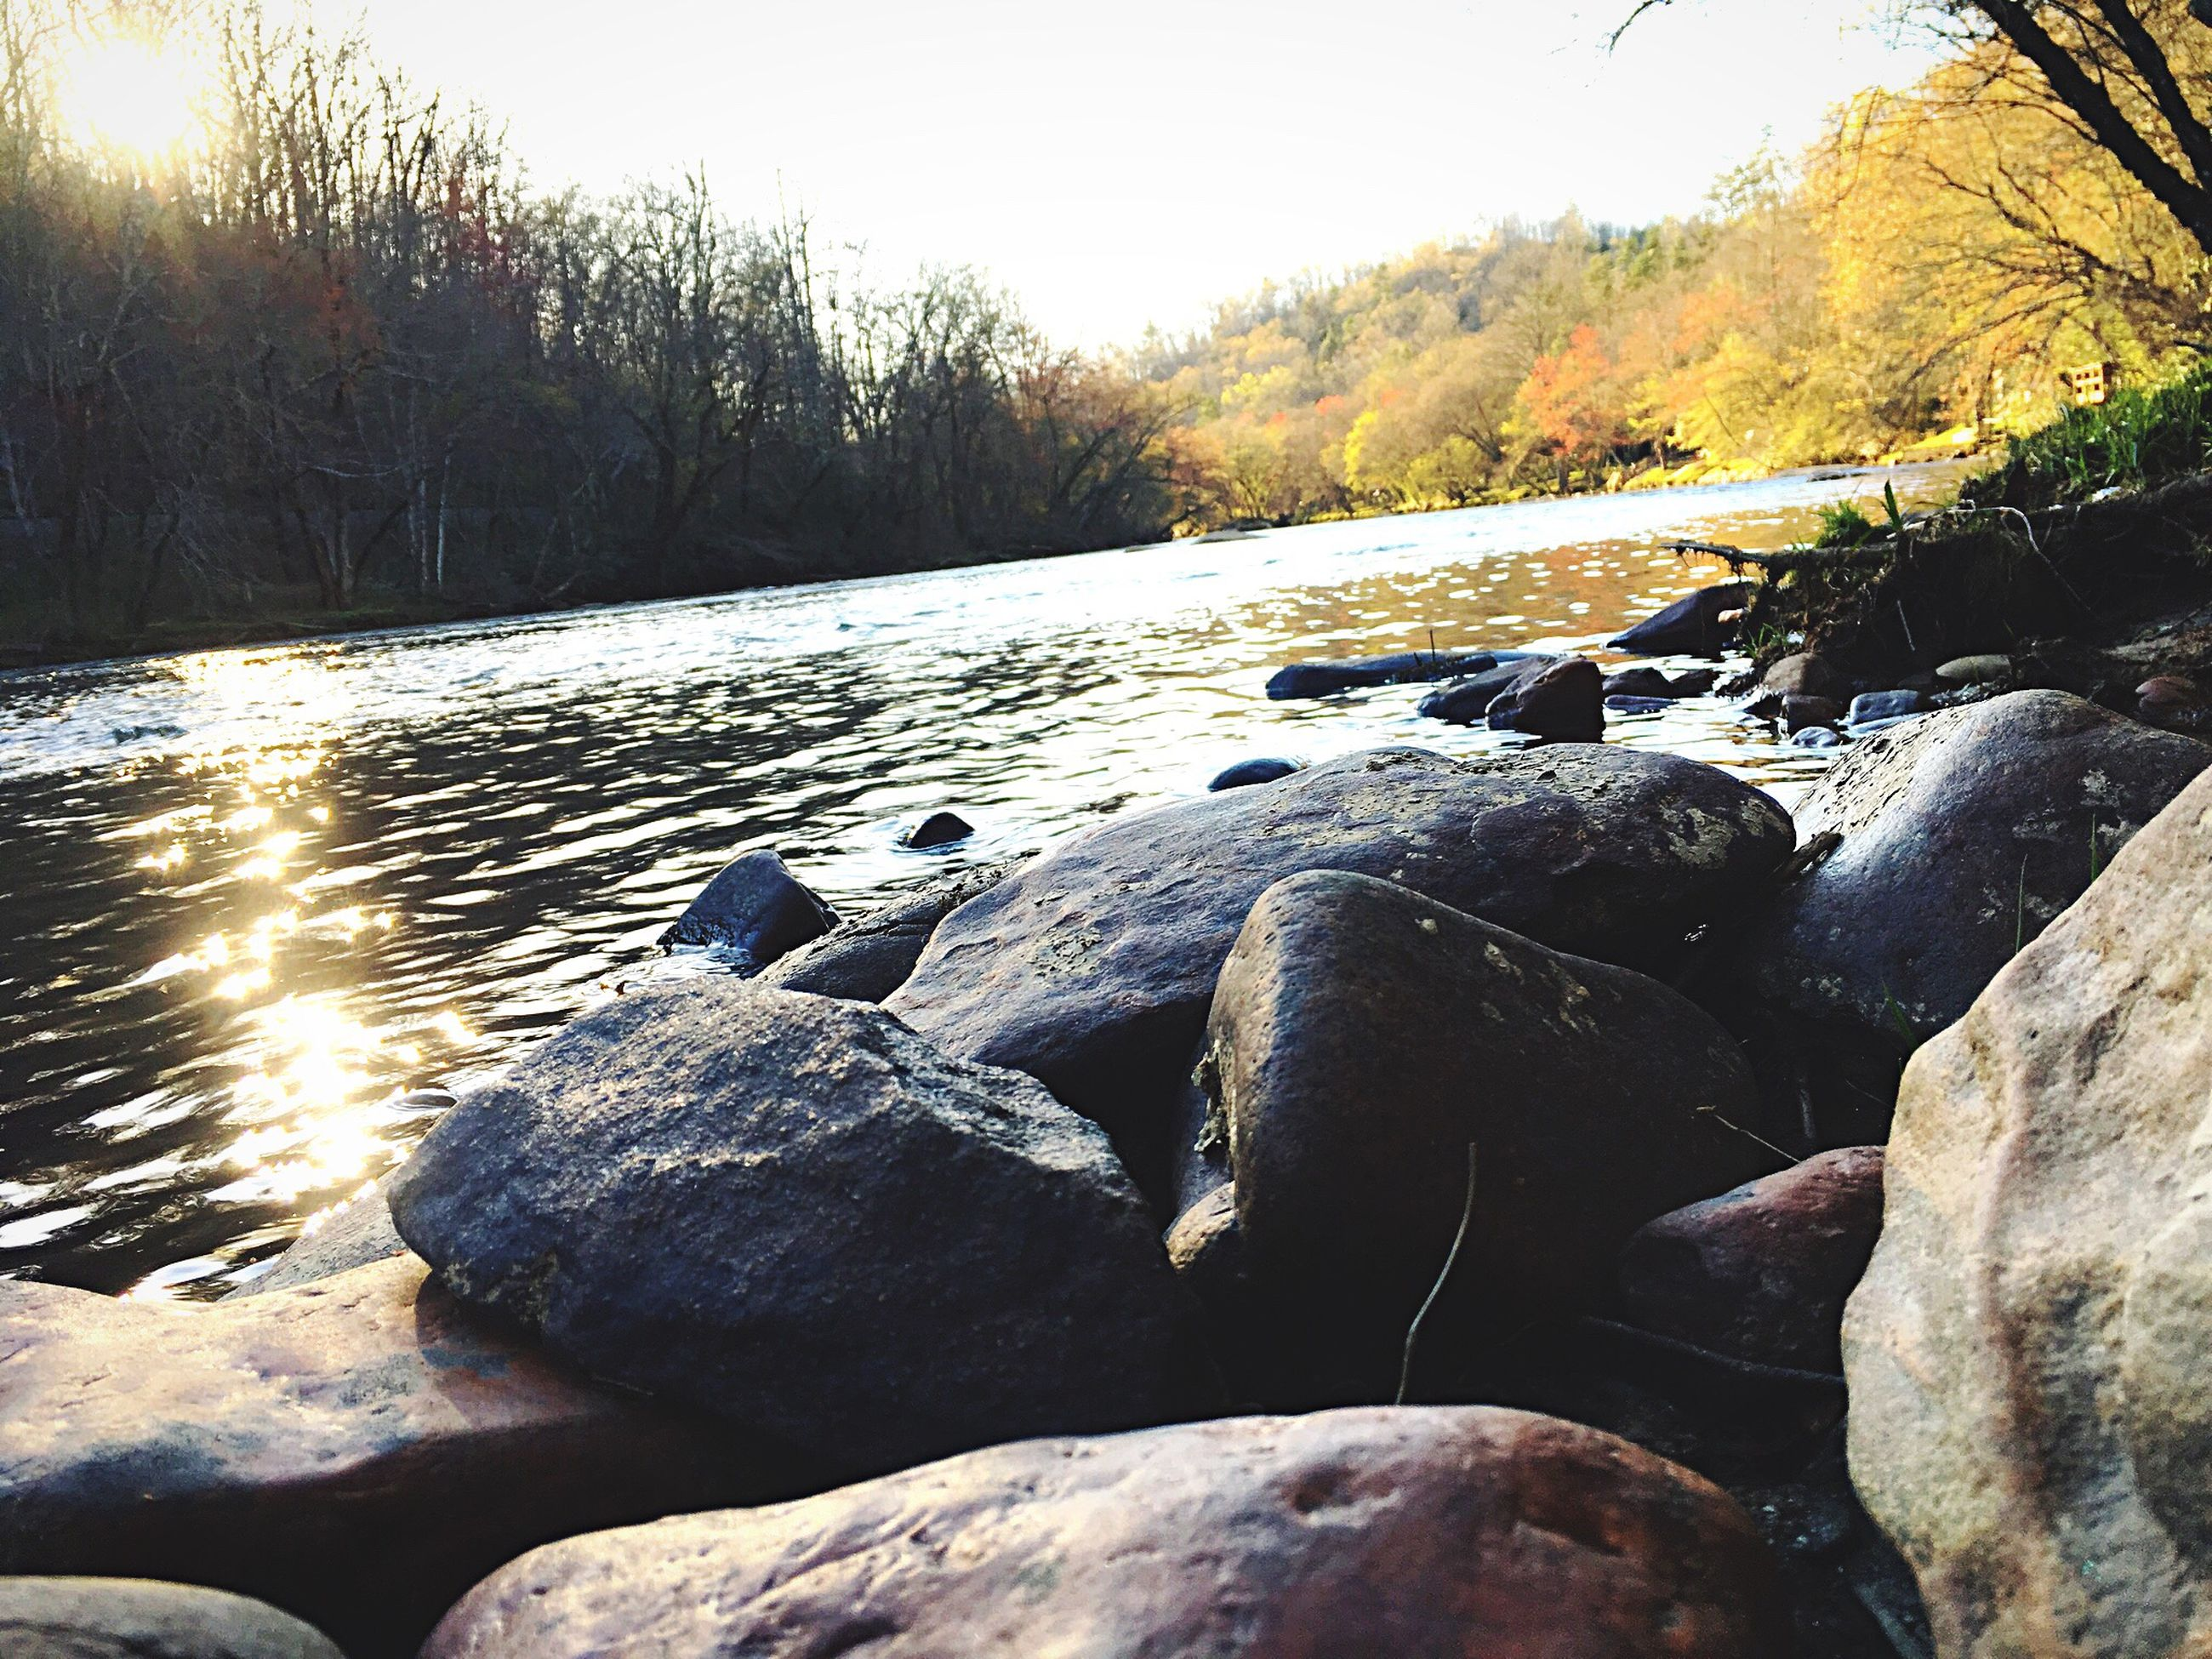 rock - object, water, nature, tranquility, tranquil scene, beauty in nature, tree, scenics, stone - object, sunlight, winter, river, snow, cold temperature, outdoors, rock, no people, stream, day, non-urban scene